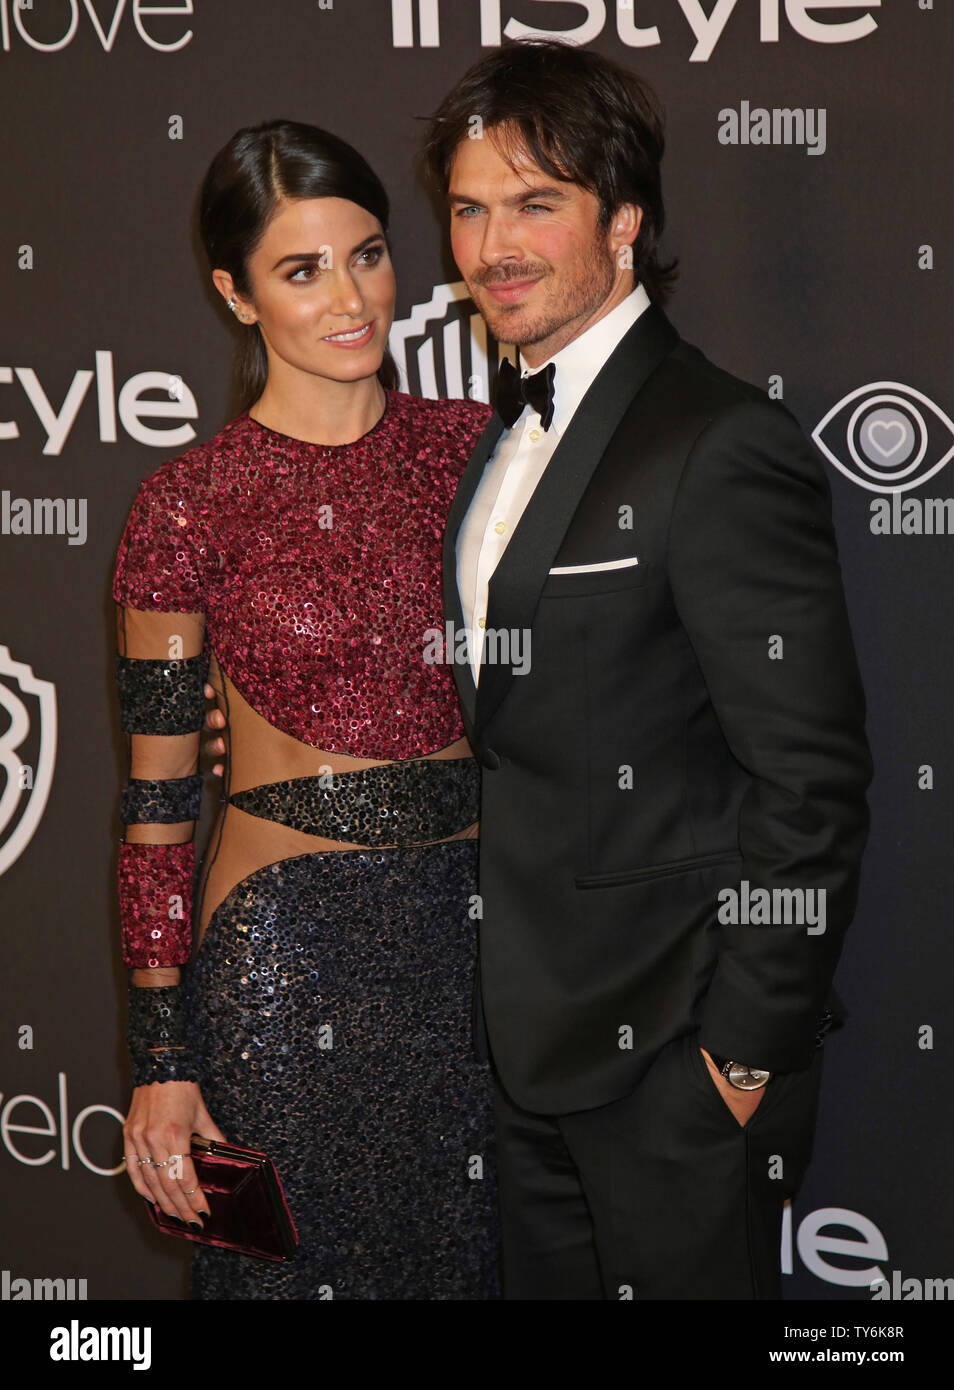 Nikki Reed (L) and Ian Somerhalder attend the 18th annual InStyle and Warner Bros. Golden Globe after-party at the Beverly Hilton Hotel in Beverly Hills, California on January 8, 2017.  Photo by David Silpa/UPI - Stock Image